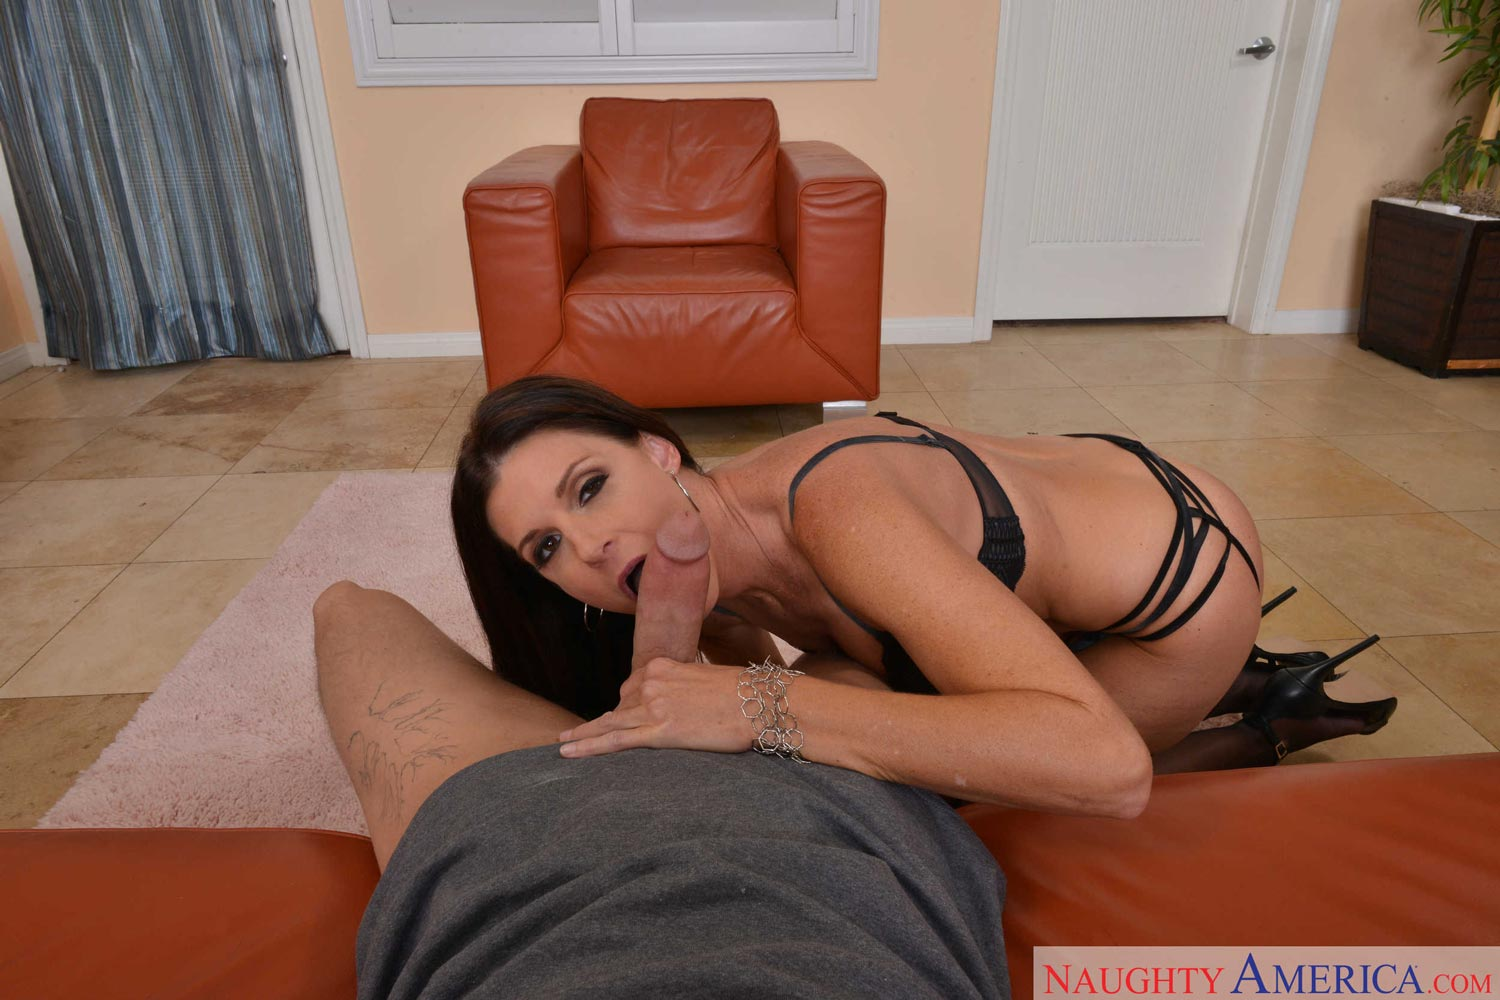 india summer pov porn videos , india summer porn videos , pov pov , india summer - mrpov , milf india summer analized by jonjon , indian pov action summer , video camera ,